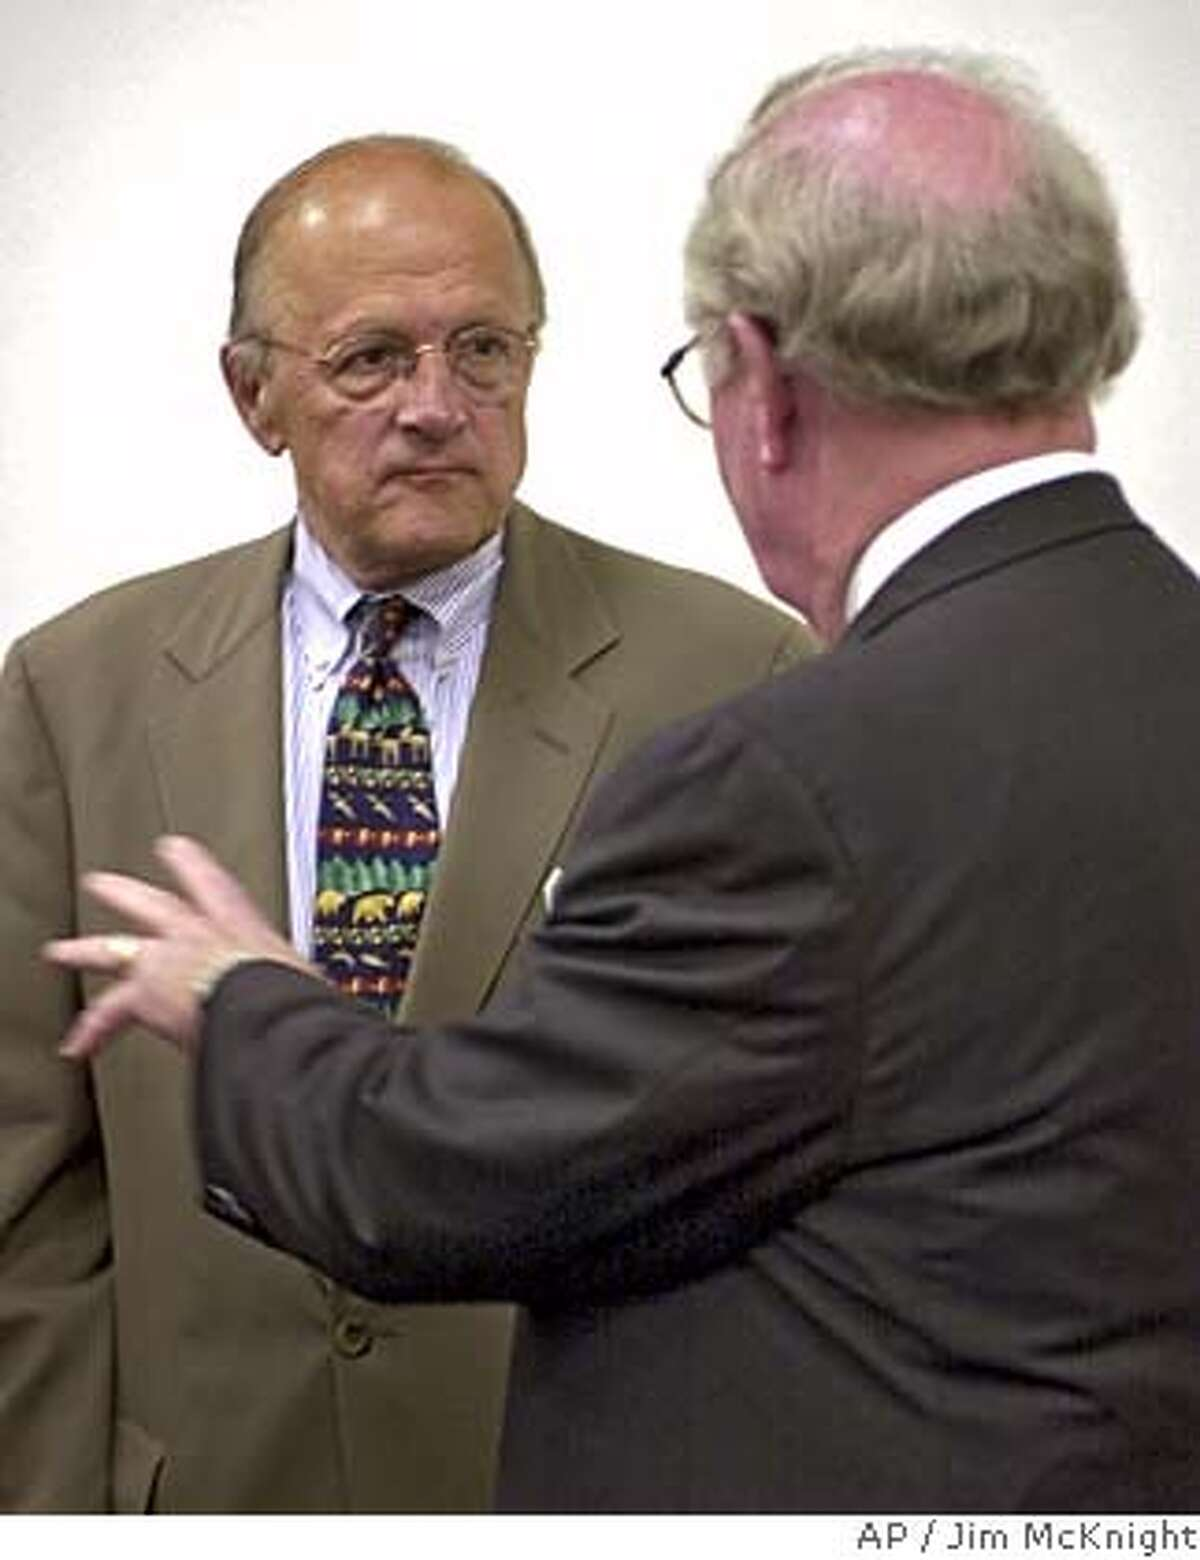 Rep. Sherwood Boehlert, R-N.Y., left, listens to Dr. Charles McQueary, undersecretary for Science and Technology of the Department of Homeland Security, Tuesday, Aug. 17, 2004, after they met with a panel at the Air Force Research Laboratory in Rome, N.Y. The longest serving Republican congressman in New York State is facing a primary battle against Dave Walrath of Auburn who came close to beating him in 2002. (AP Photo/Jim McKnight) FIVE OF FIVE